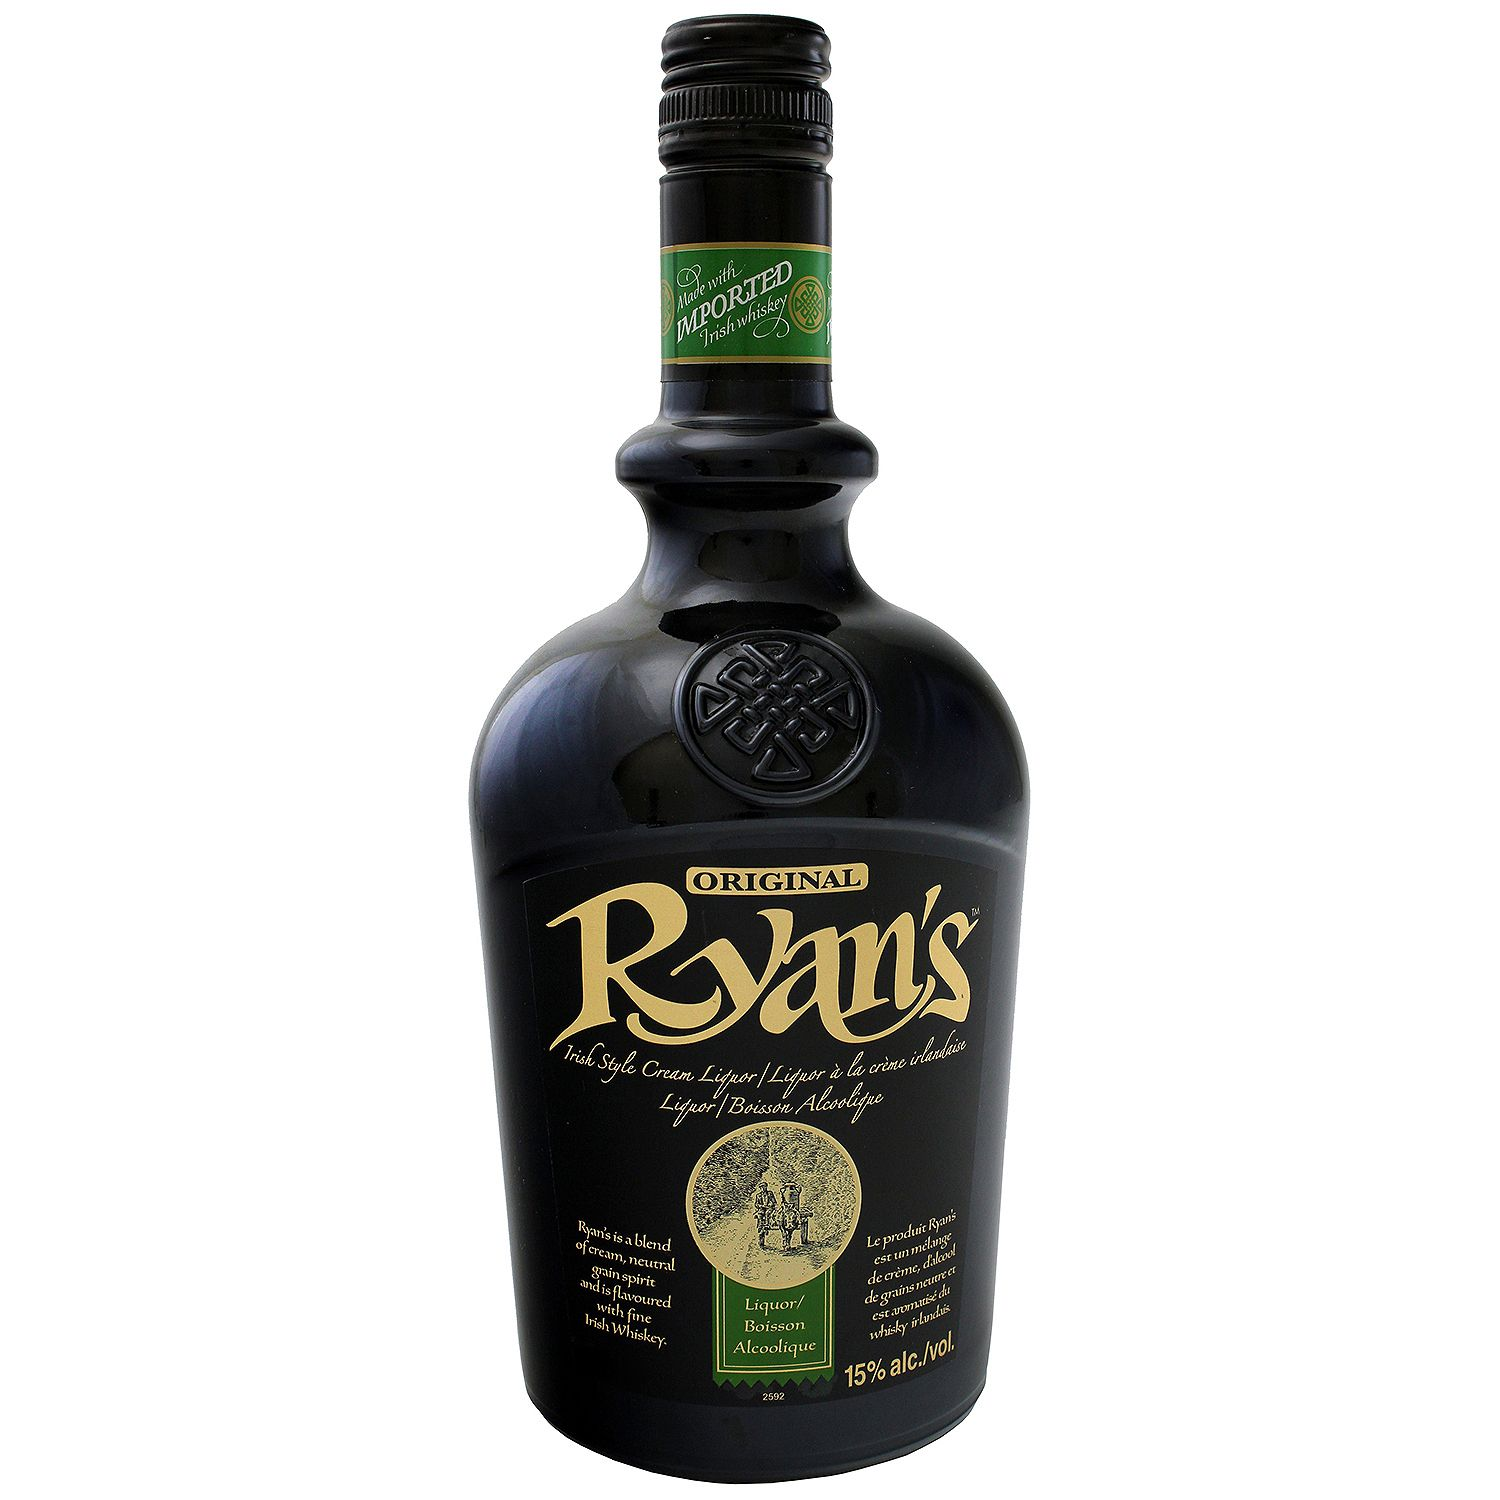 RYANS IRISH CREAM